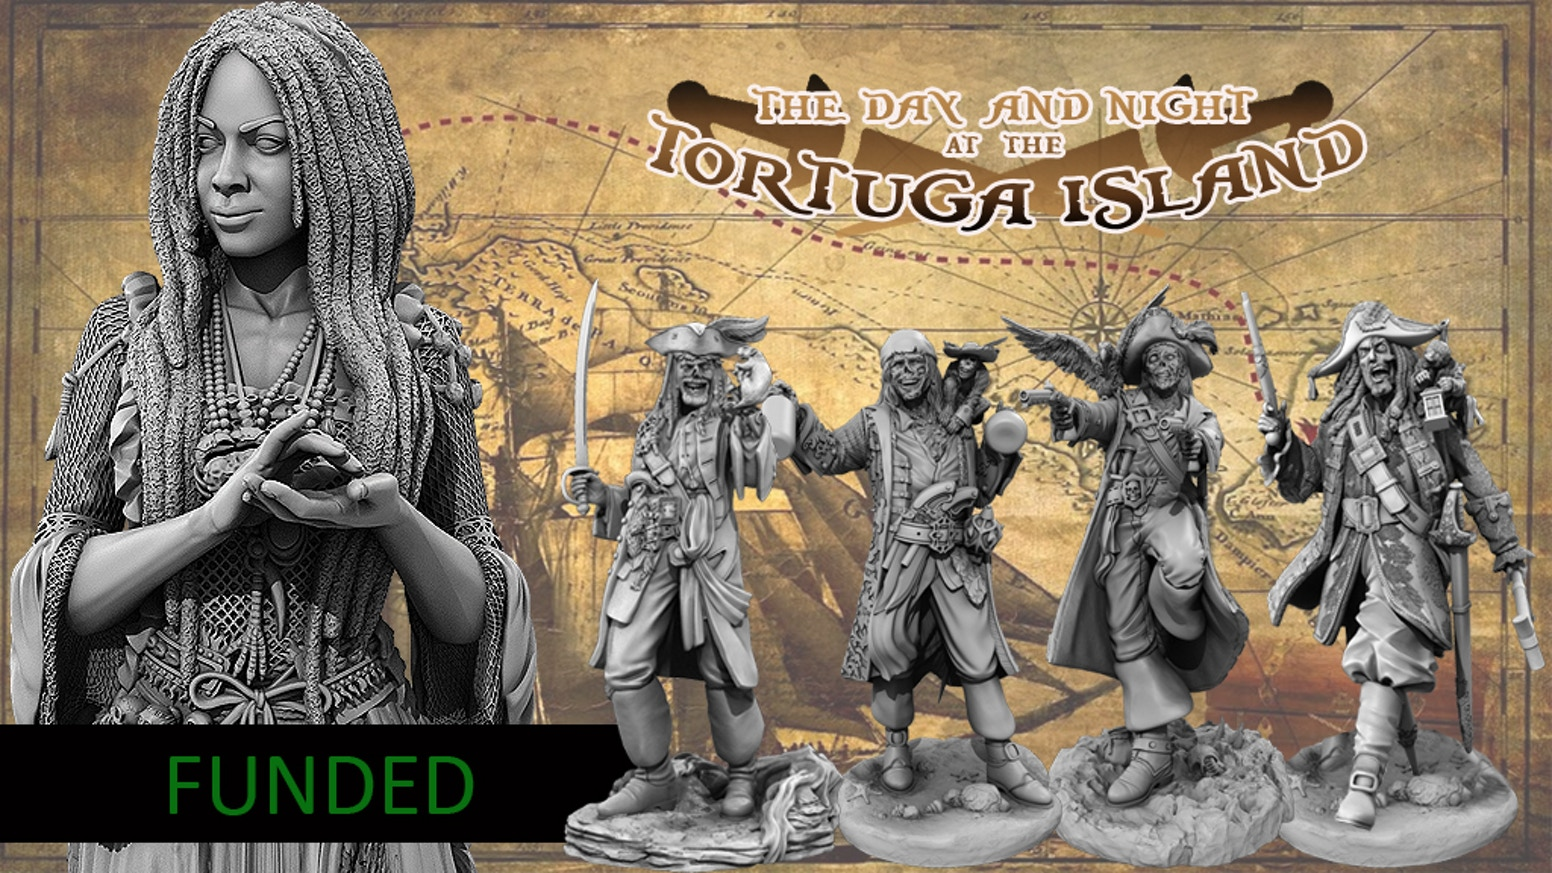 The Day & Night at Tortuga Island, 75mm Resin Figures by 9th Gate